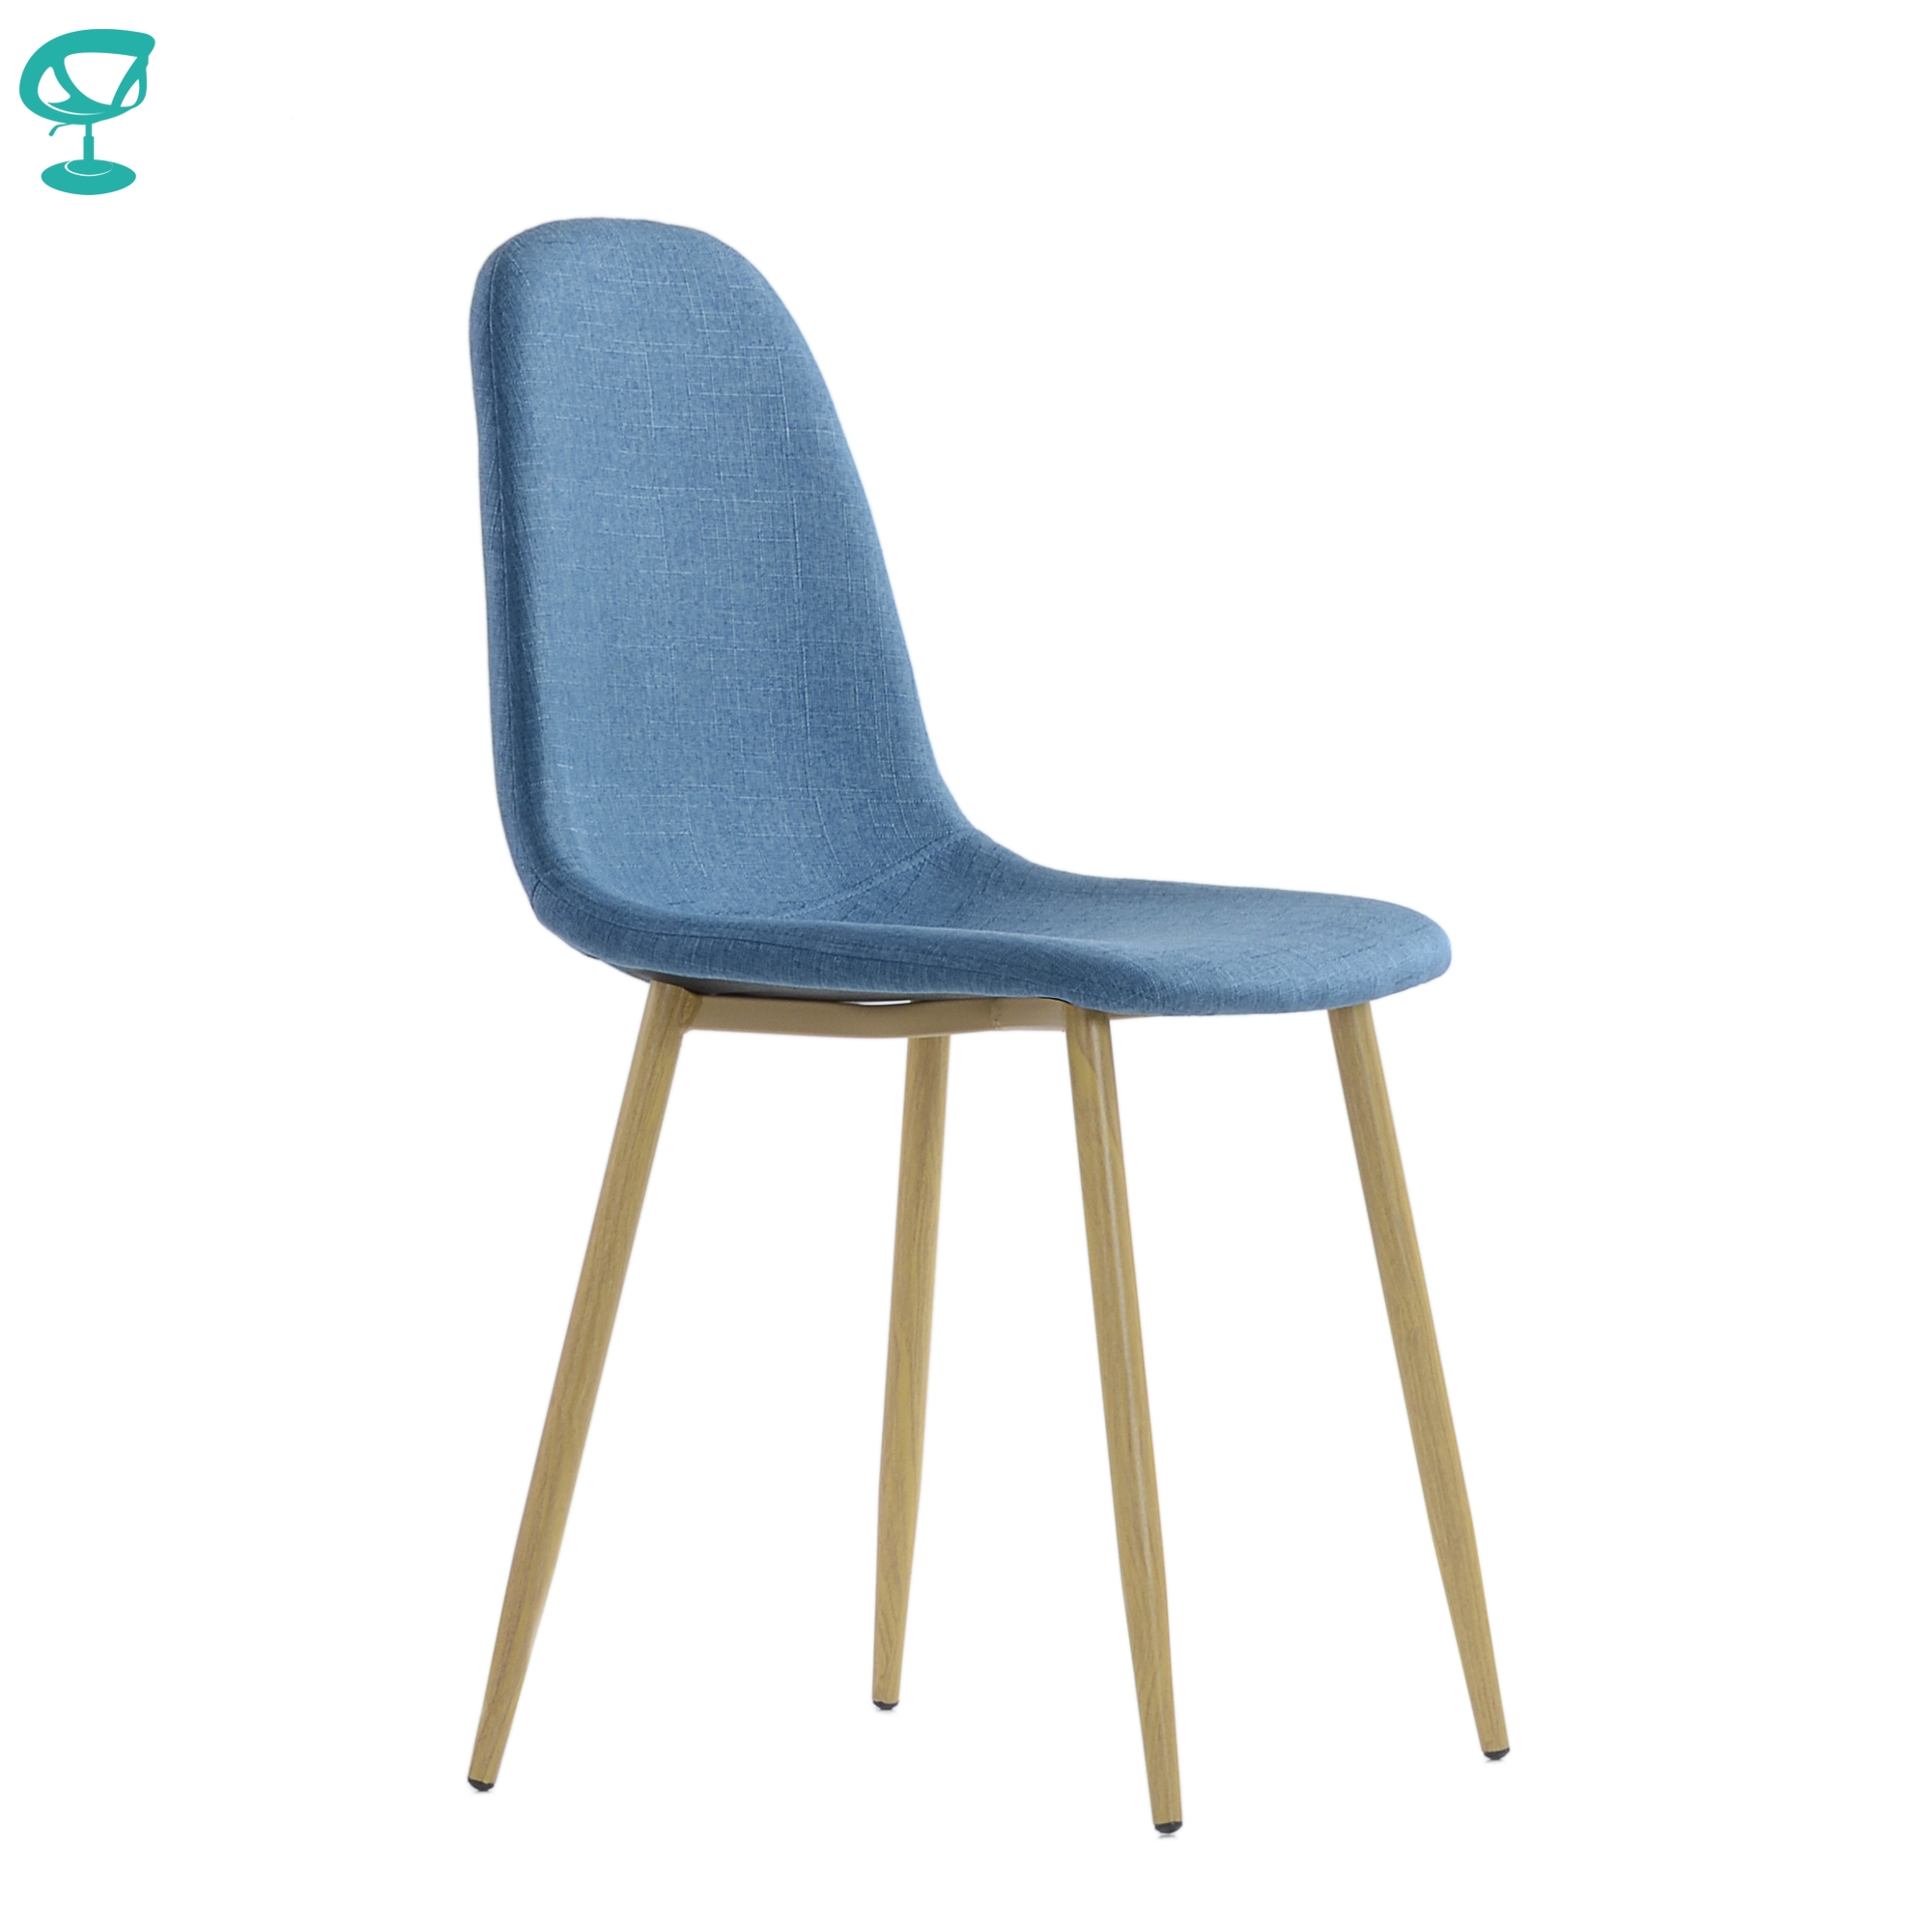 95745 Barneo S-15 Kitchen Chair Legs Metal Seat Fabric Chair For Living Room Chair Dining Chair Table Chair Furniture For Kitchen